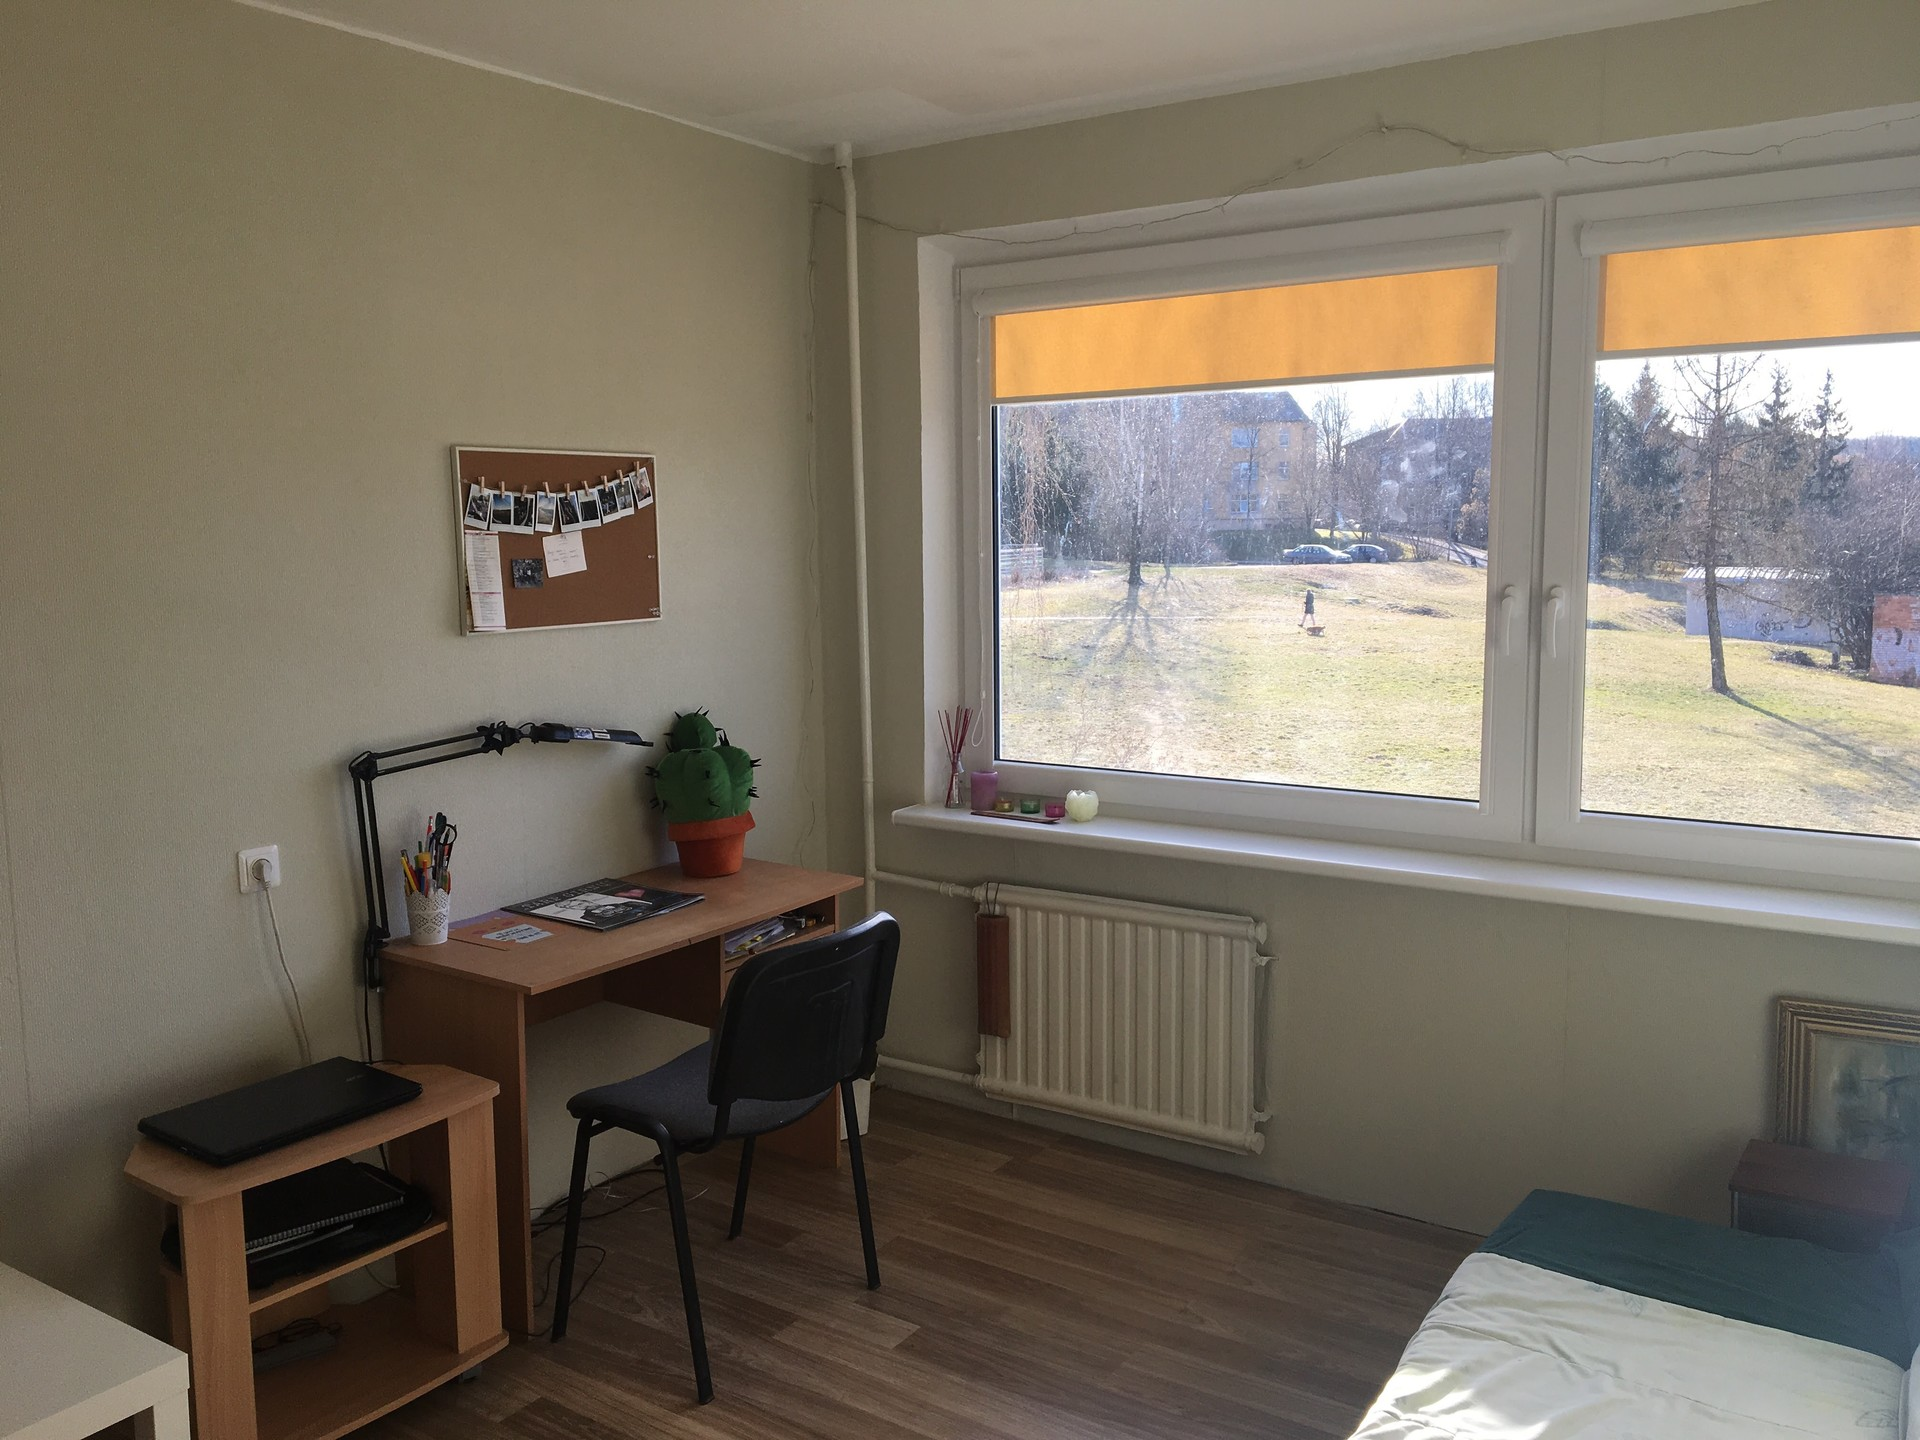 room-rent-vilnius-city-2a2e4b50145f1b7f3fa01edc20efb46a